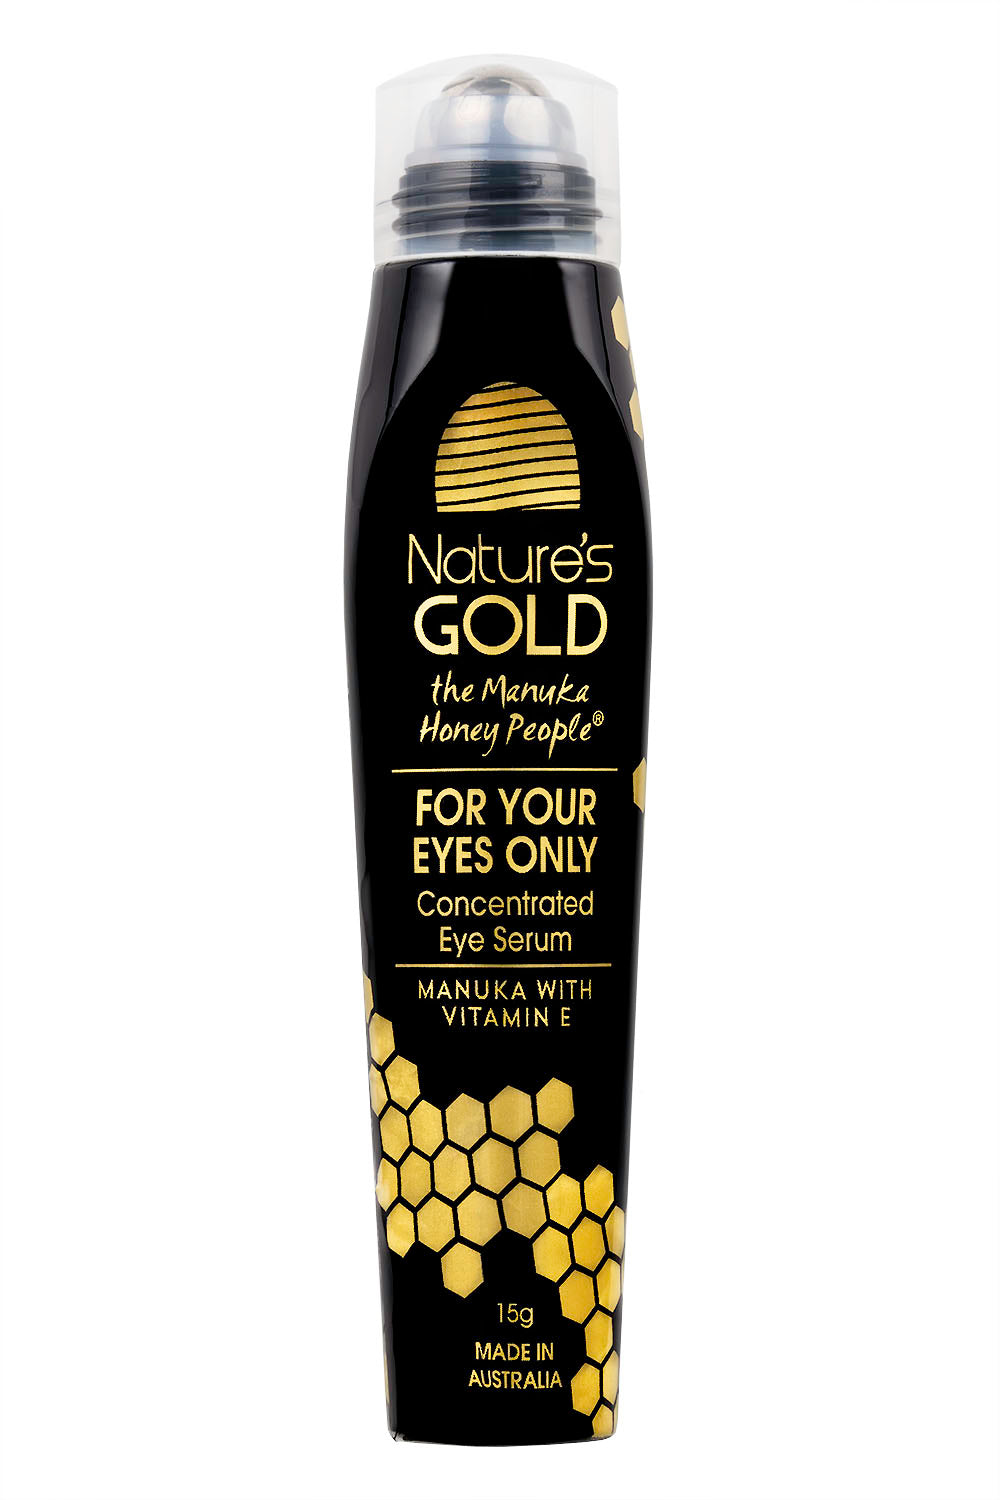 FOR YOUR EYES ONLY Serum - BUY 1 and RECEIVE THE 2ND ONE HALF PRICE